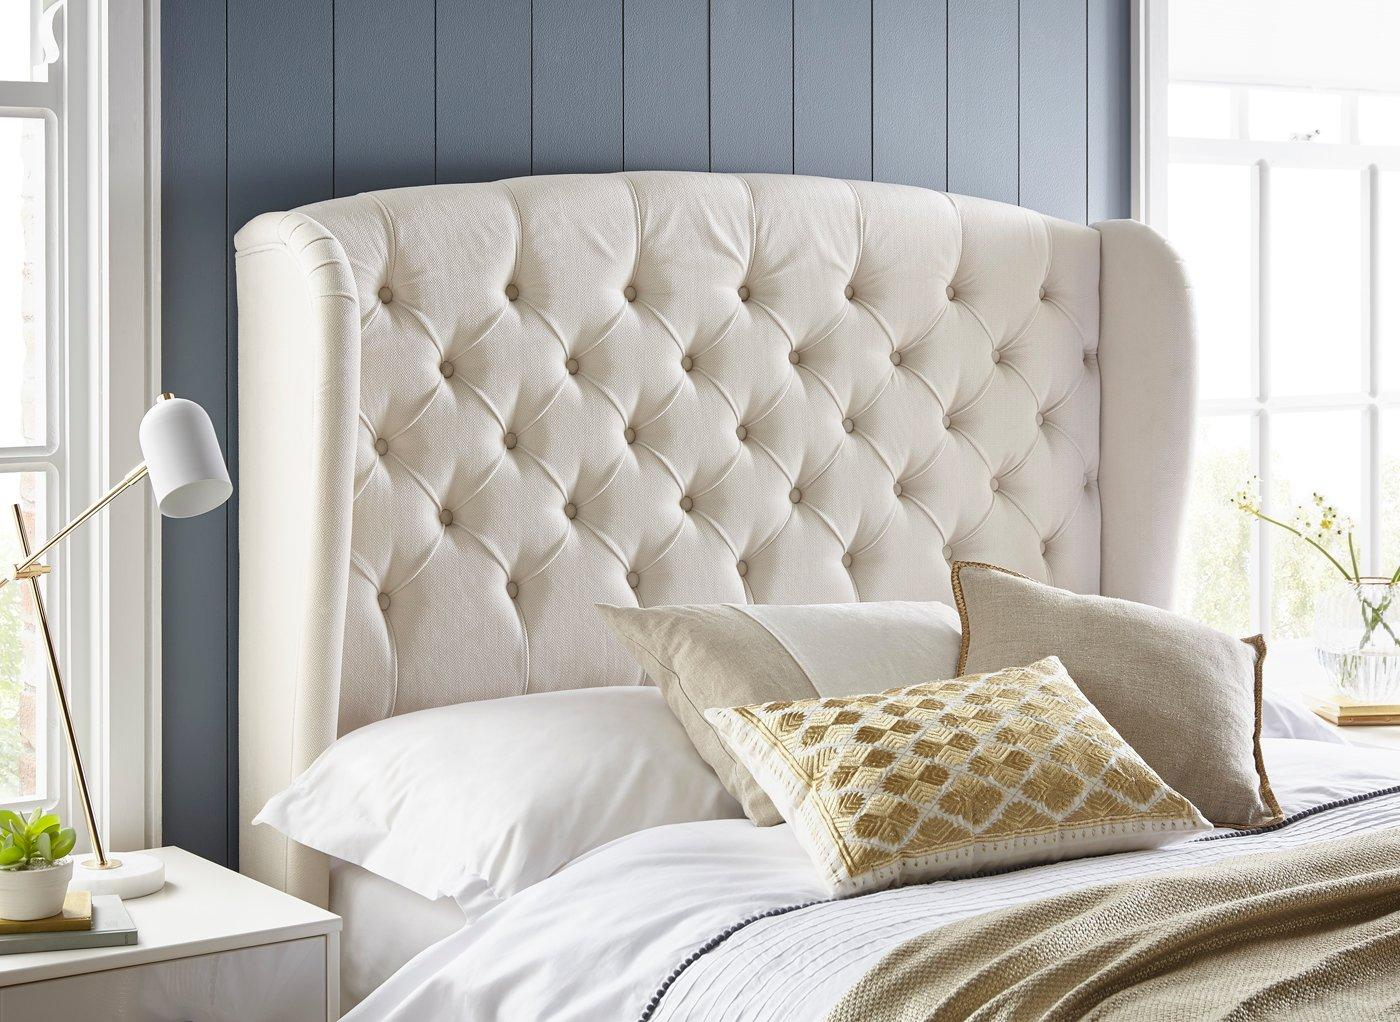 Bedding Stores Canberra Canberra Winged Headboard Dreams